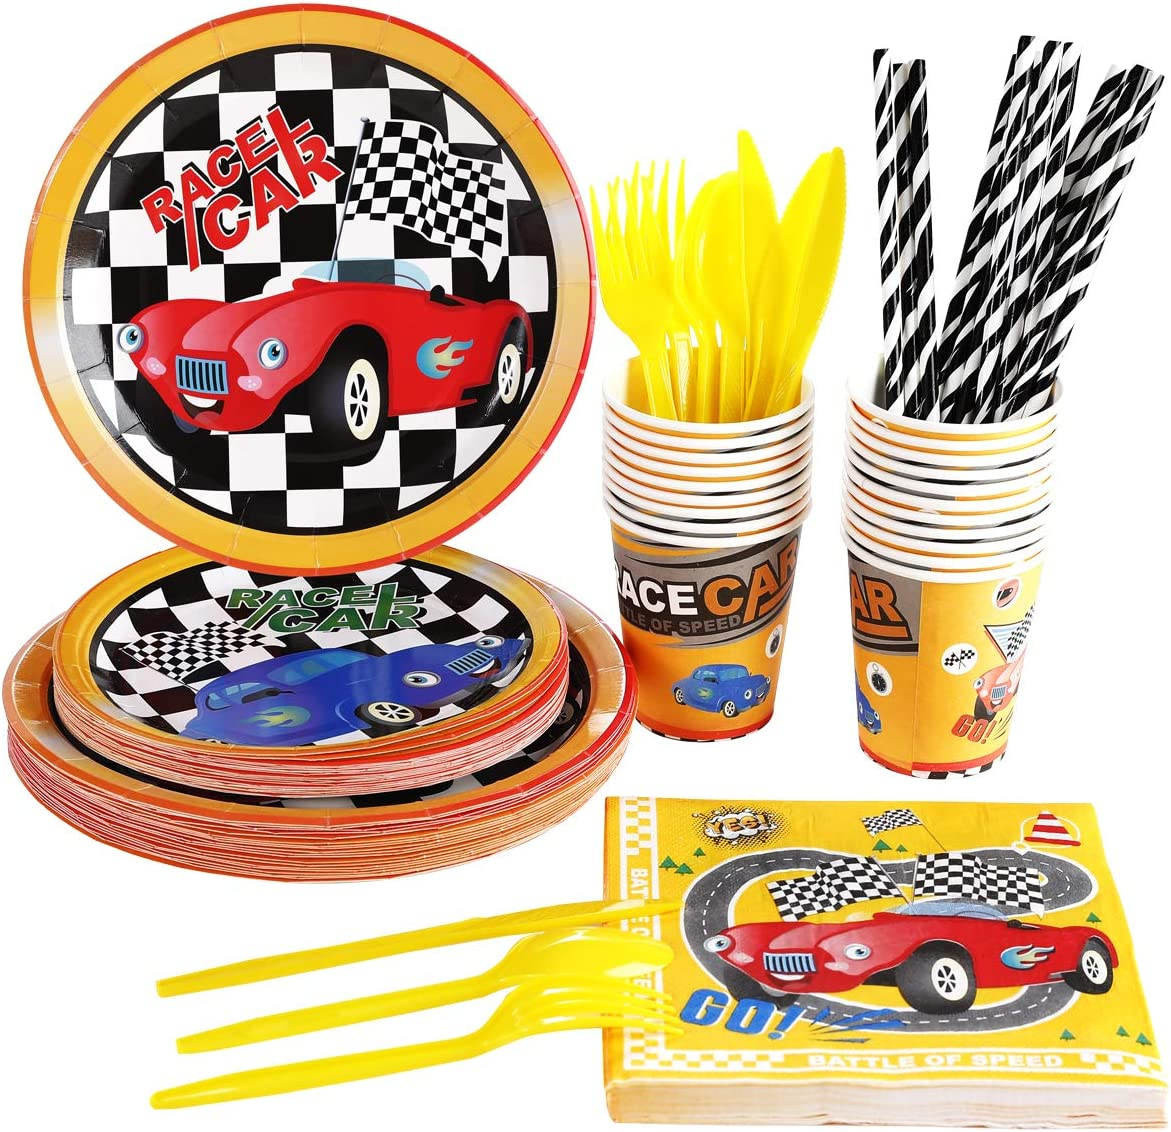 Racing Car Birthday Party Supplies Set For Boys, Serves 20 Guest, Monster Truck Party Supplies Packs, Includes Race Cars Plates, Cups, Napkins, Straws, Cutlery